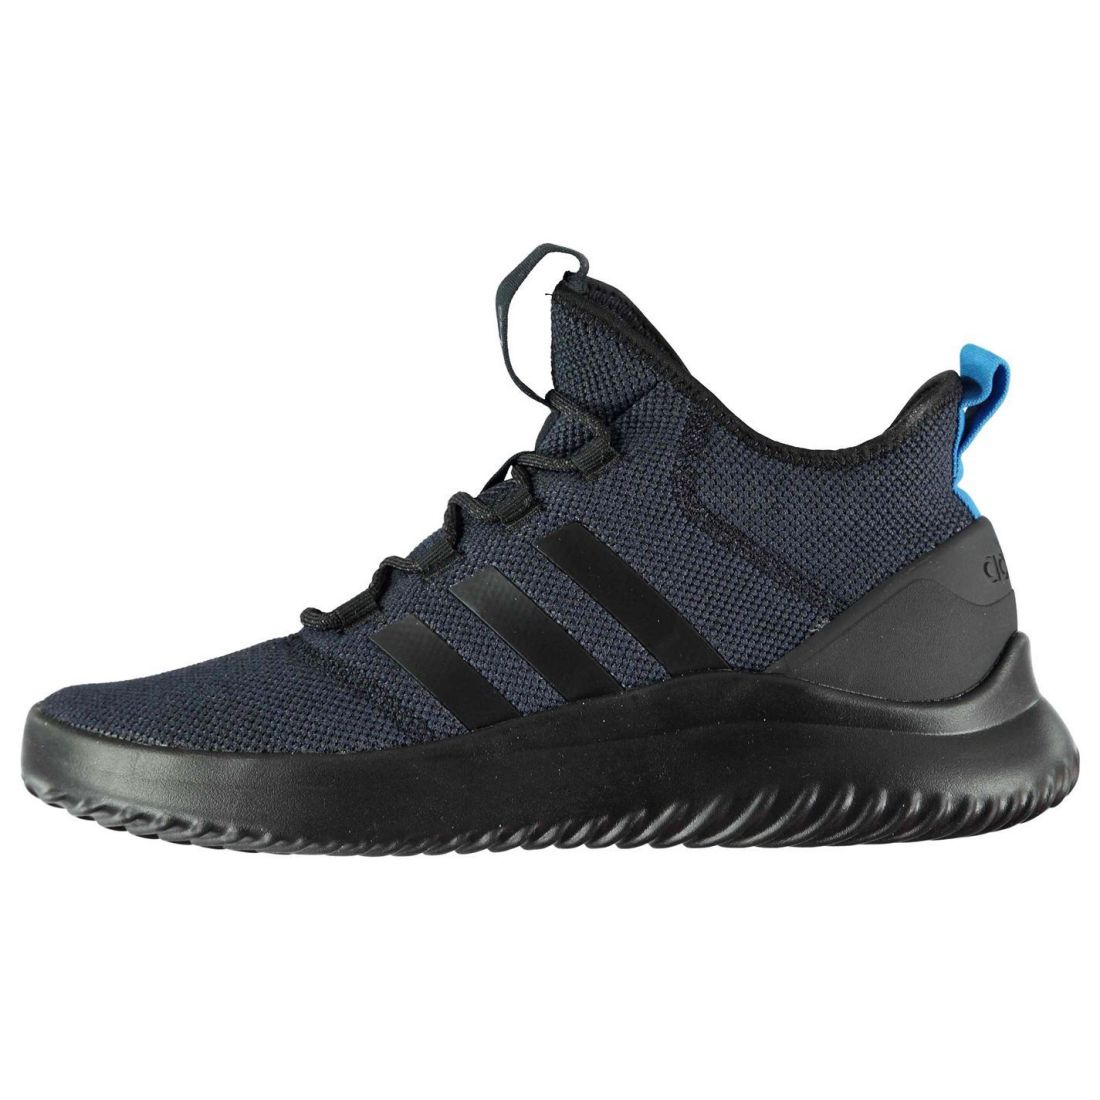 585b8cb374f adidas Cloudfoam Ultimate B Ball Sneakers Mens Gents Runners Laces ...